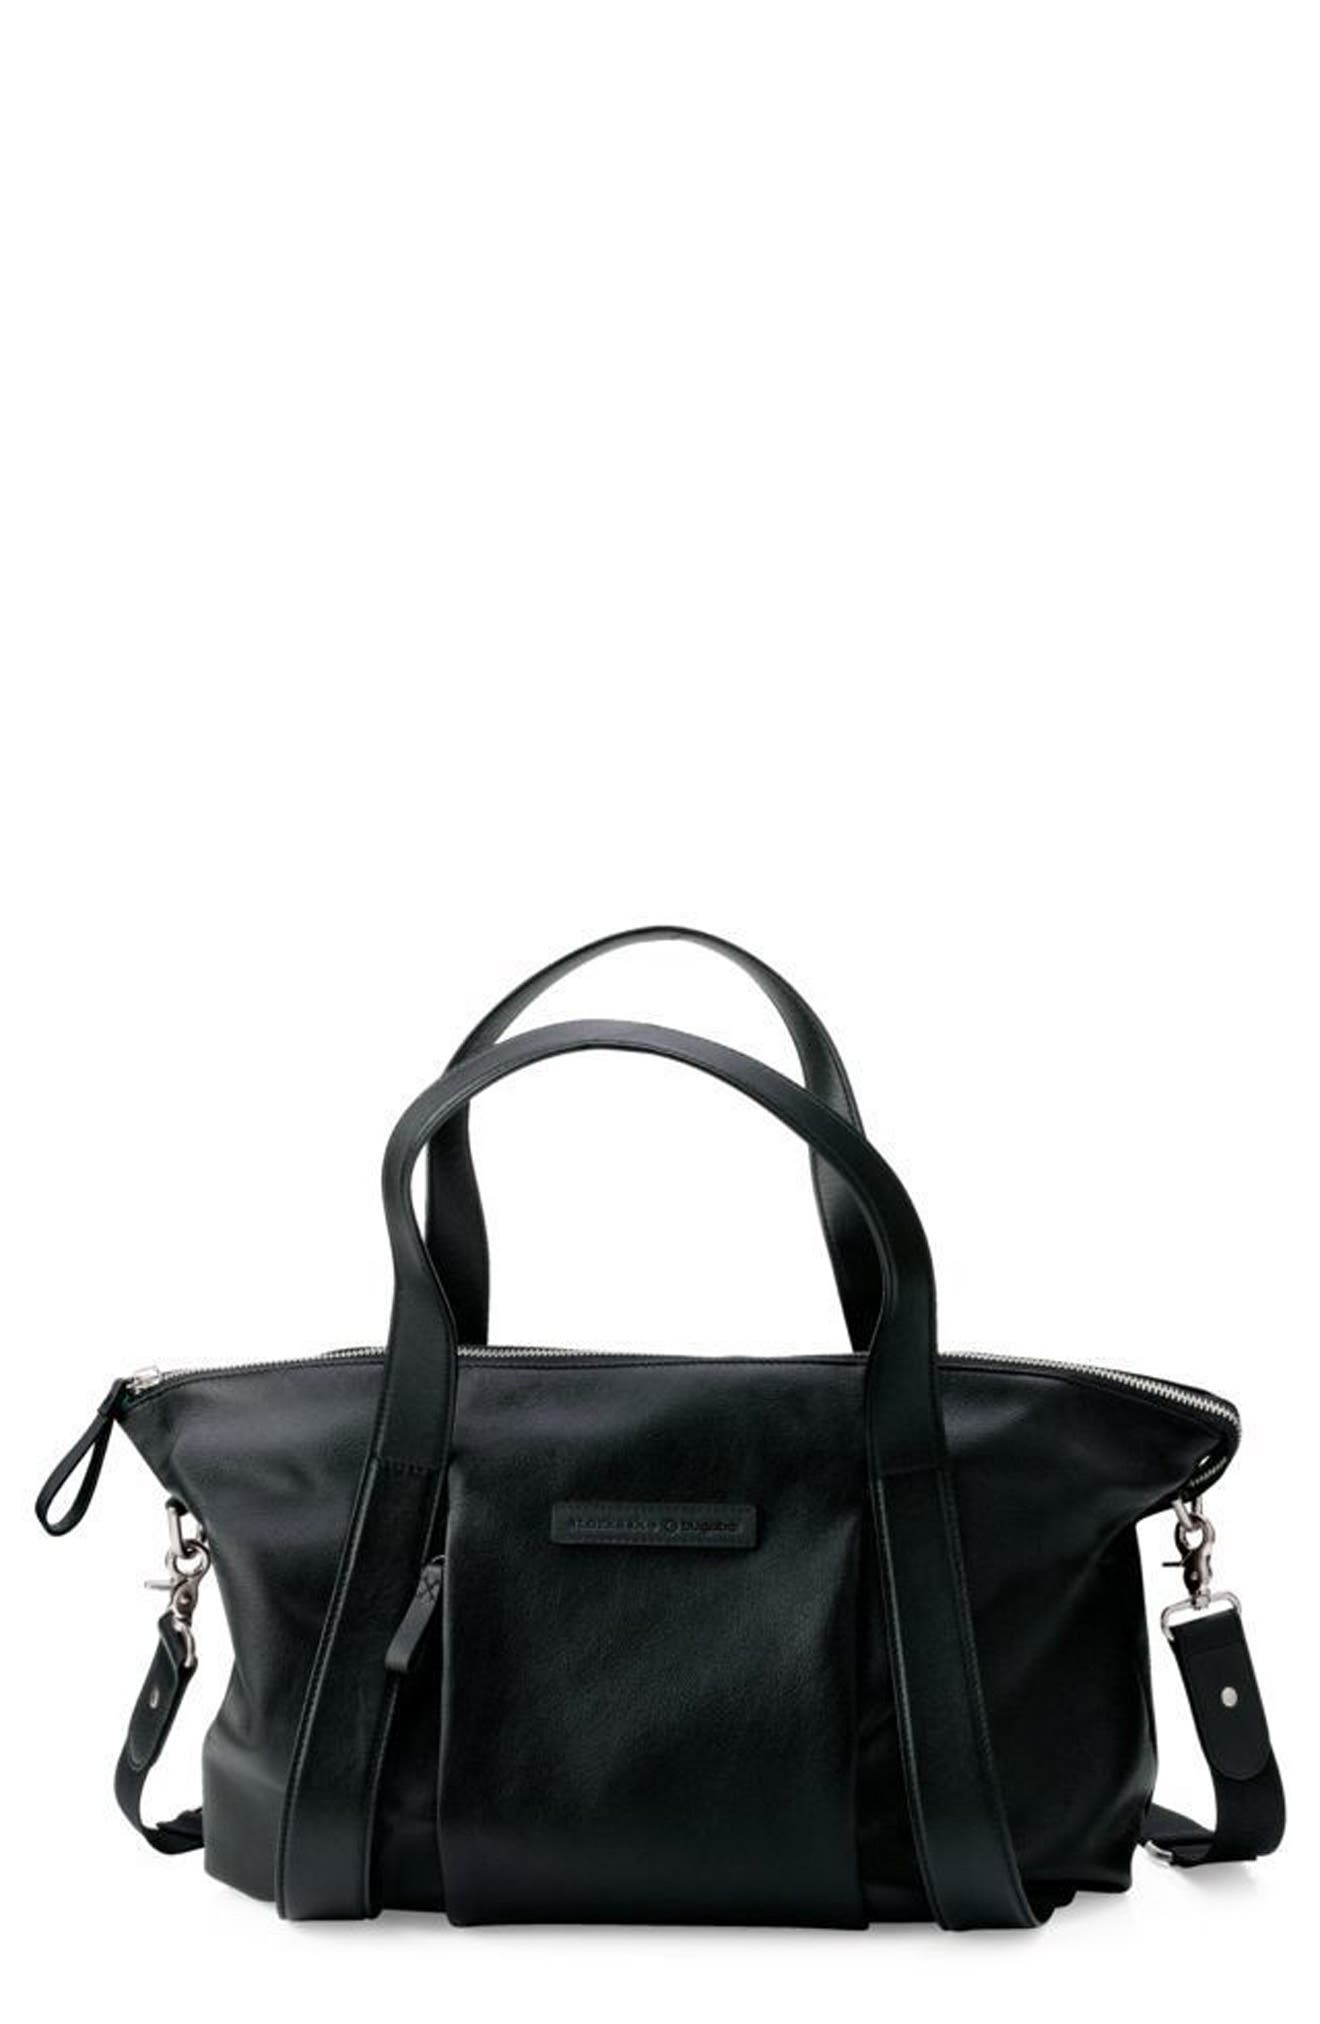 x Storksak Leather Diaper Tote Bag,                             Main thumbnail 1, color,                             BLACK